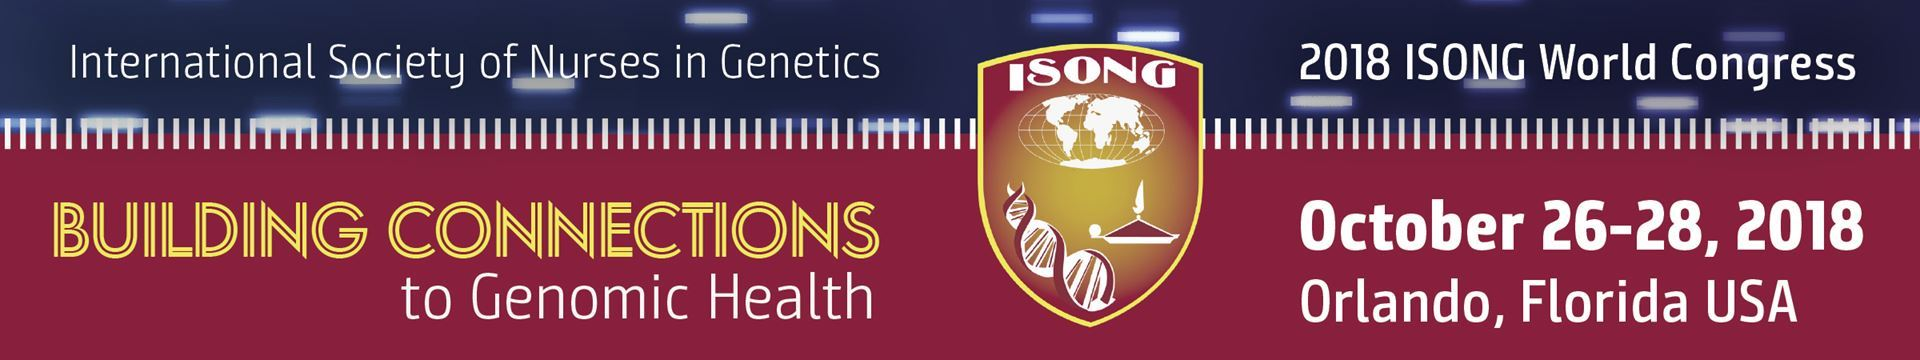 International society of nurses in genetics isong 2018 isong on behalf of the 2018 isong congress planning committee we invite you to join us at the 2018 congress building connections to genomic health spiritdancerdesigns Gallery